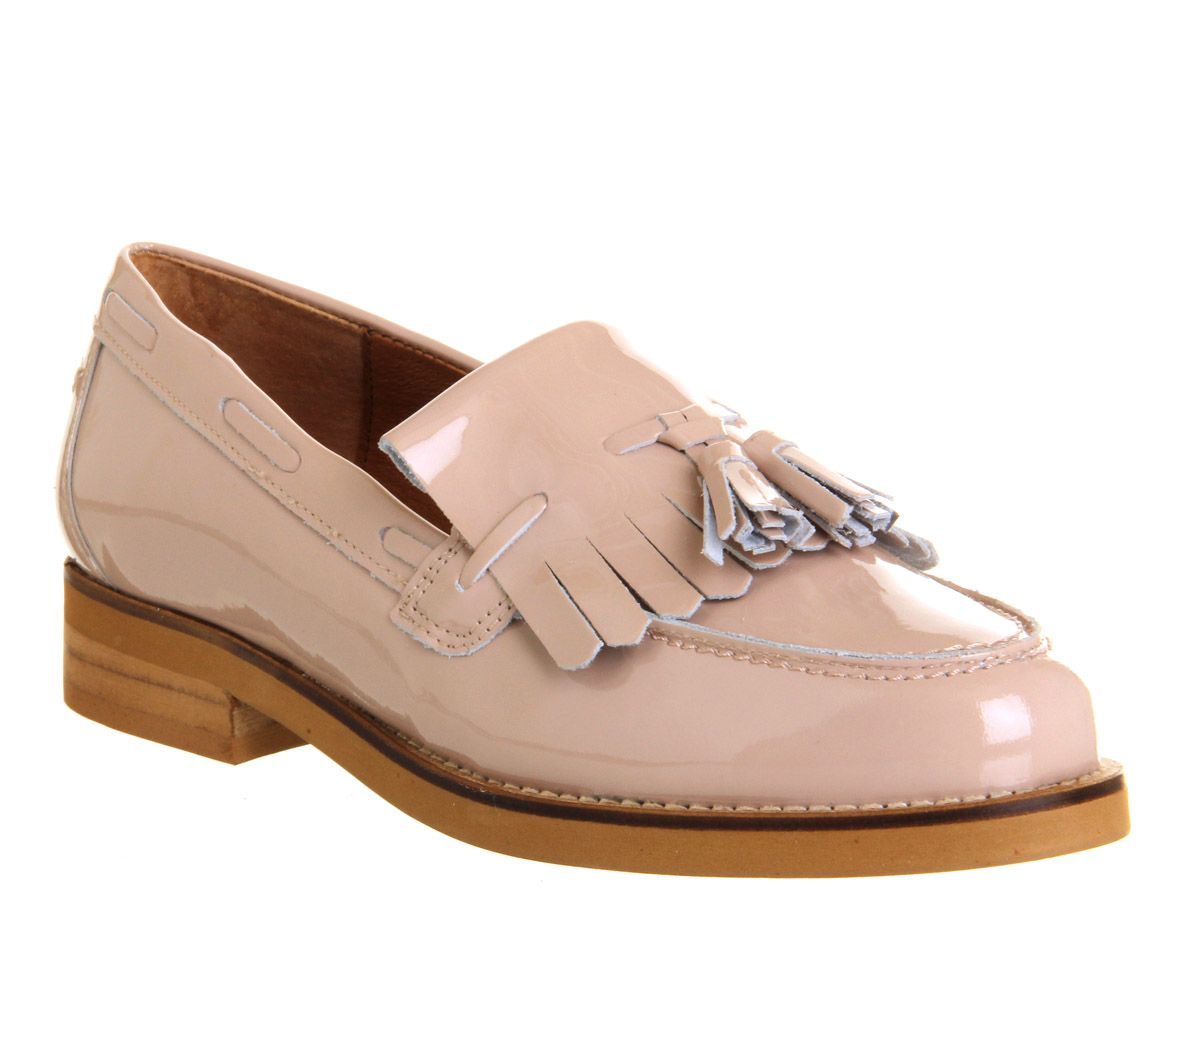 Office Extravaganza Loafer Patent Leather Flats